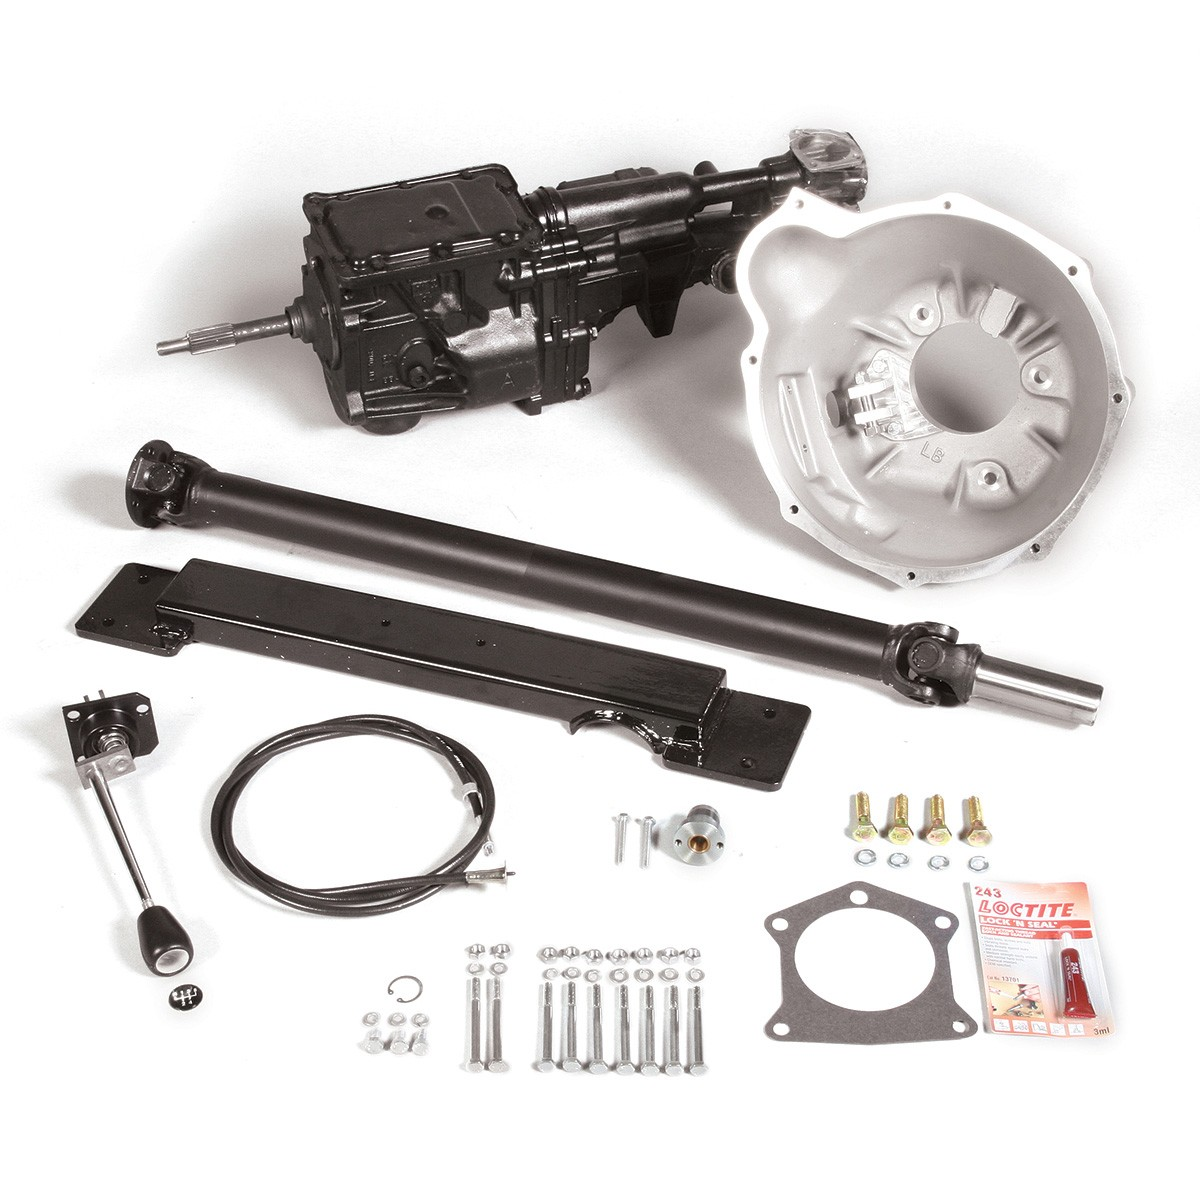 5-Speed Conversion Kit - Gearbox & Driveshaft - Clutch